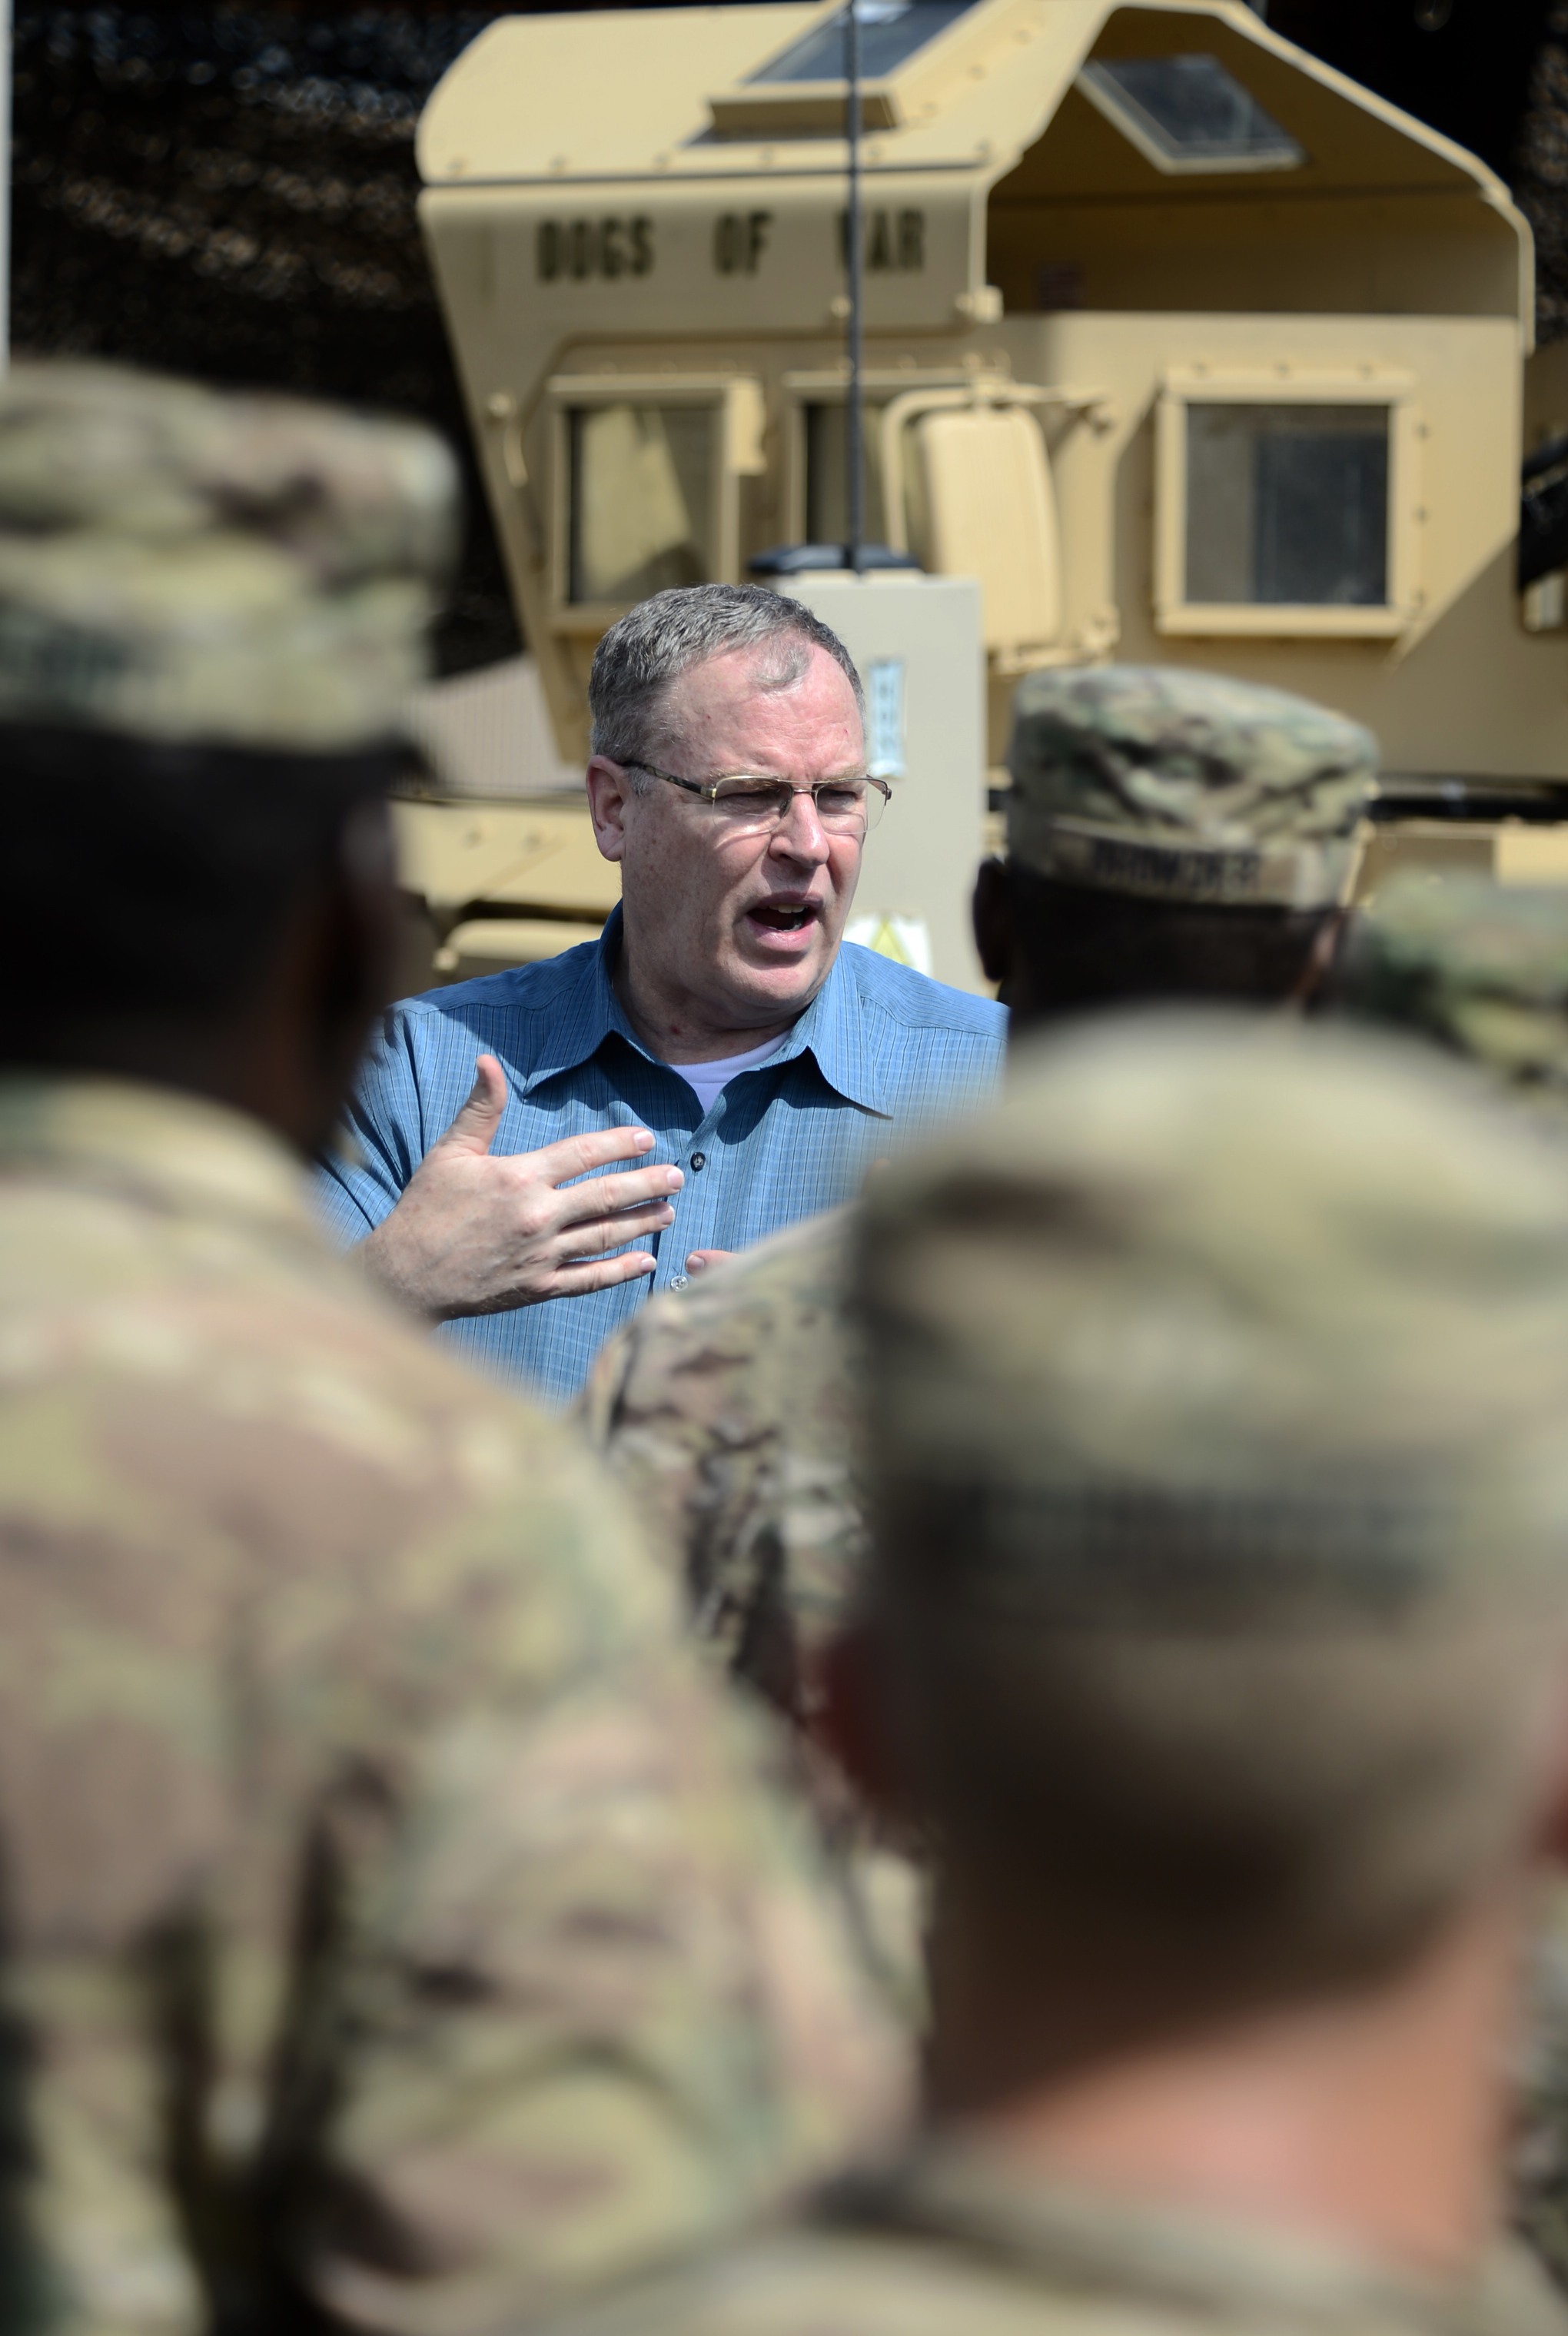 Deputy Secretary of Defense Bob Work speaks with soldiers from Delta Co. 2-124 of the Florida Army National Guard Nov. 26, 2015, at Camp Lemonnier, Djibouti. During his visit to the camp, Work met with members of the quick response force to thank them and other camp service members for their service during the Thanksgiving holiday. (U.S. Air Force photo by Senior Airman Peter Thompson)